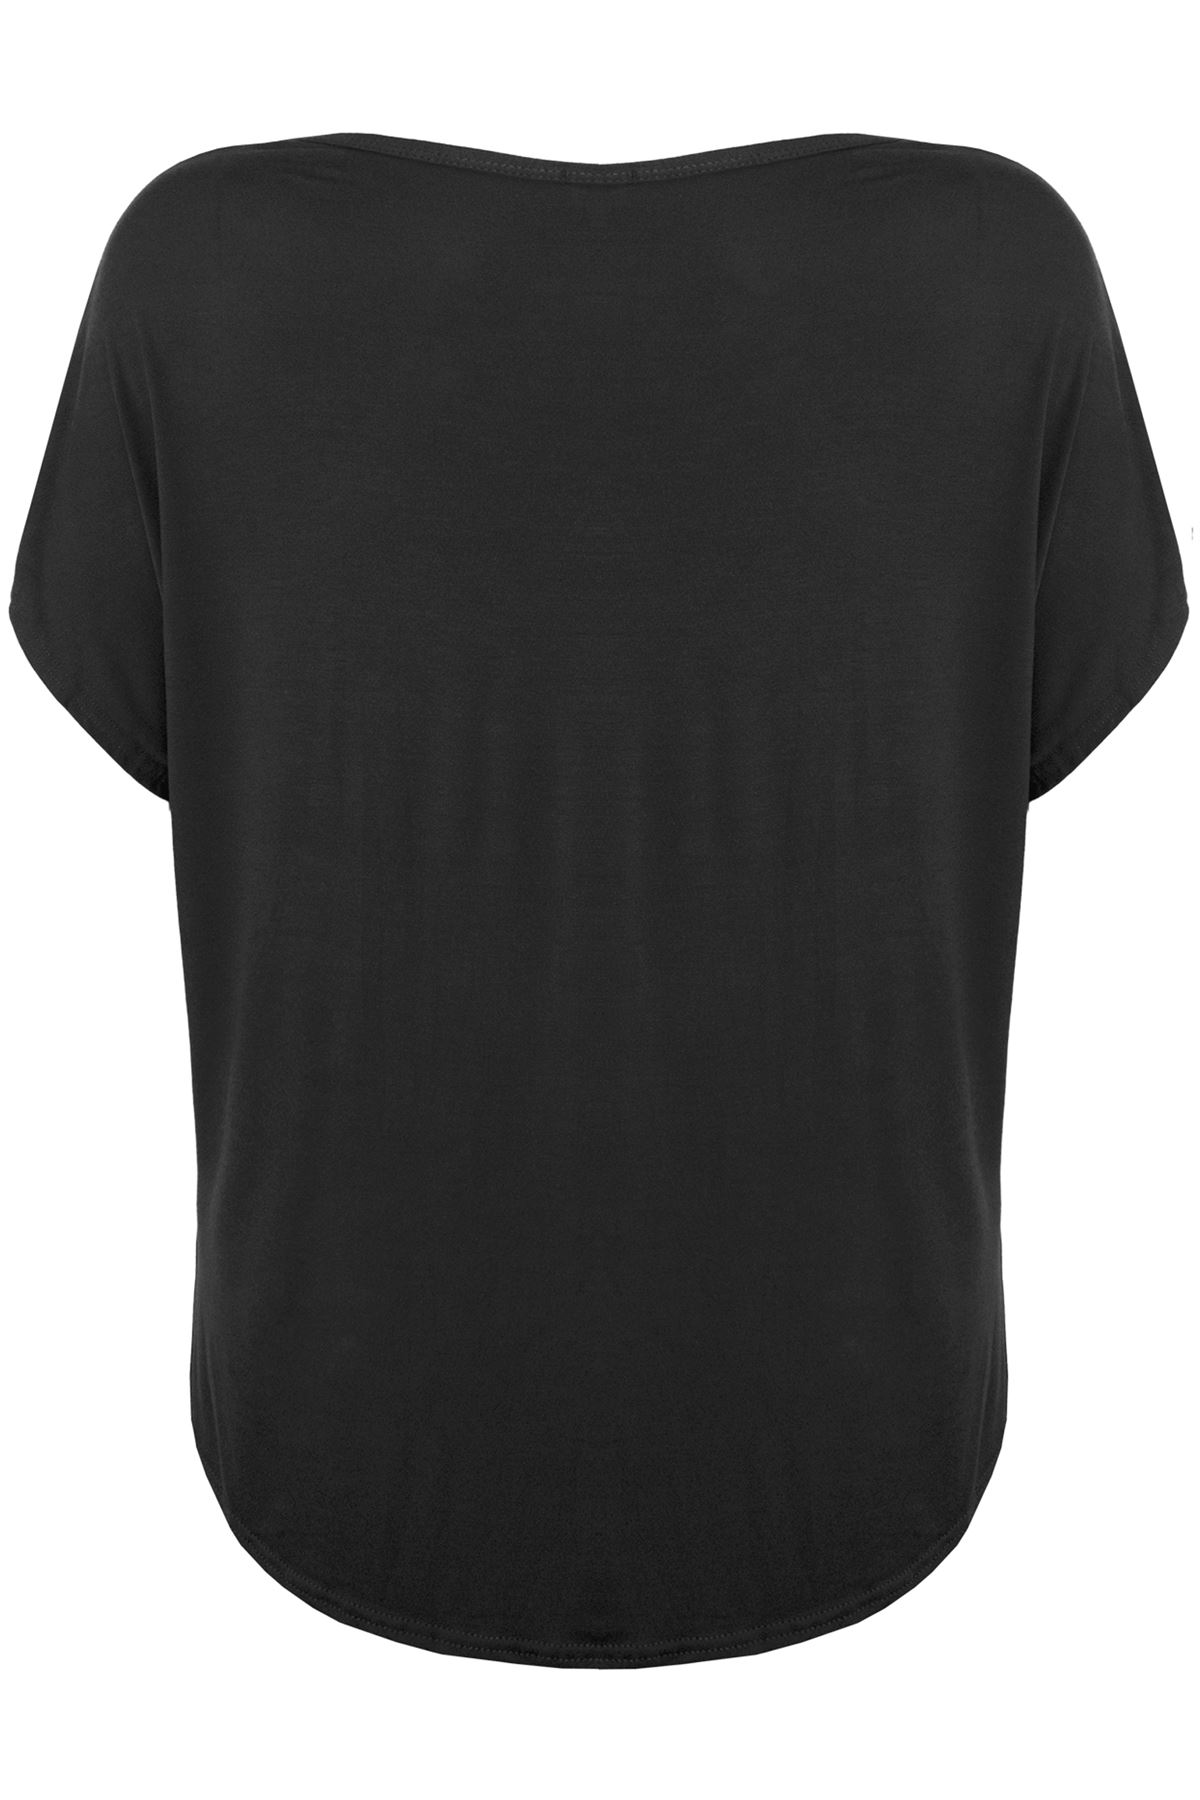 Plus Size Womens Sorry I am Late Off Shoulder T Shirt Ladies Baggy Lagenlook Top